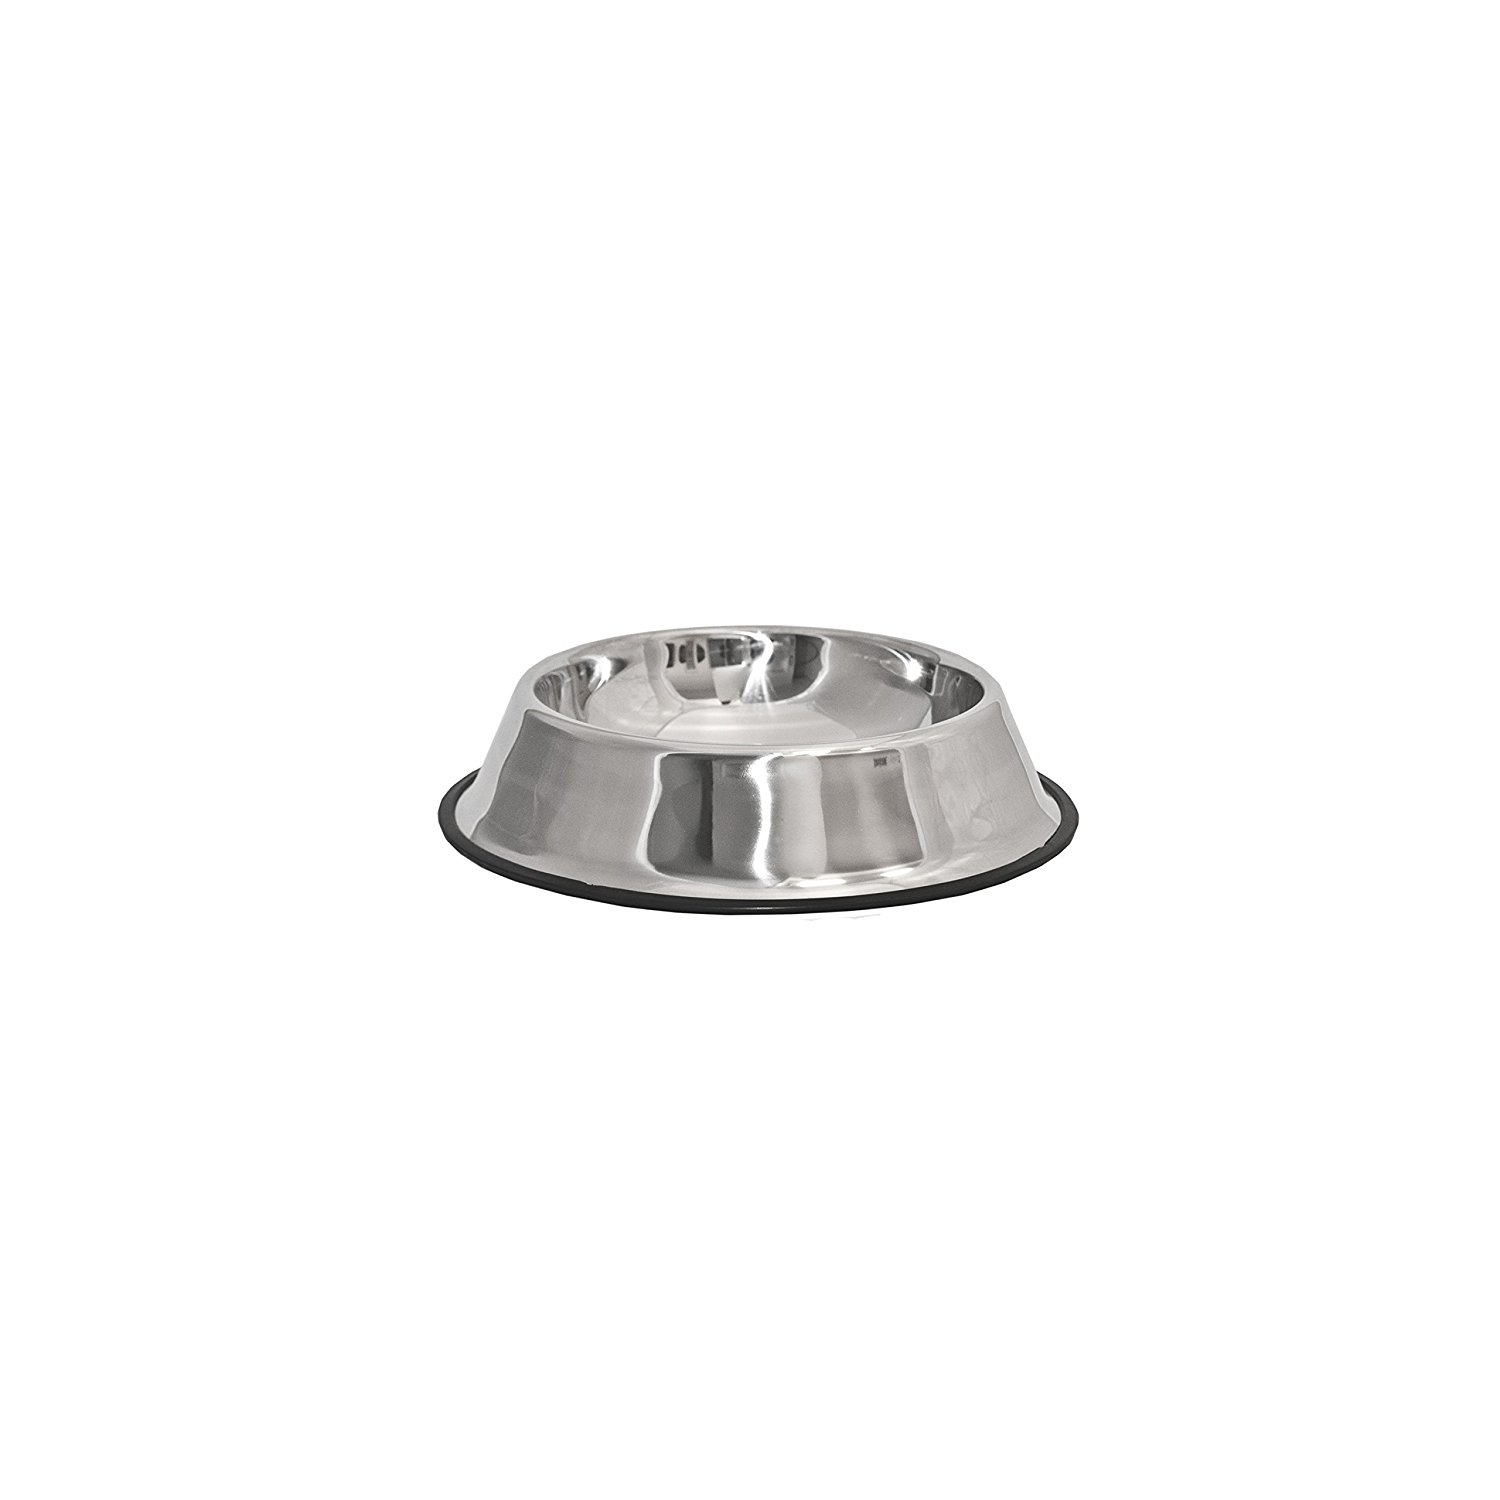 PSSB02M Stainless Steel Pet Dog Cat Puppy Food Bowl, Medium